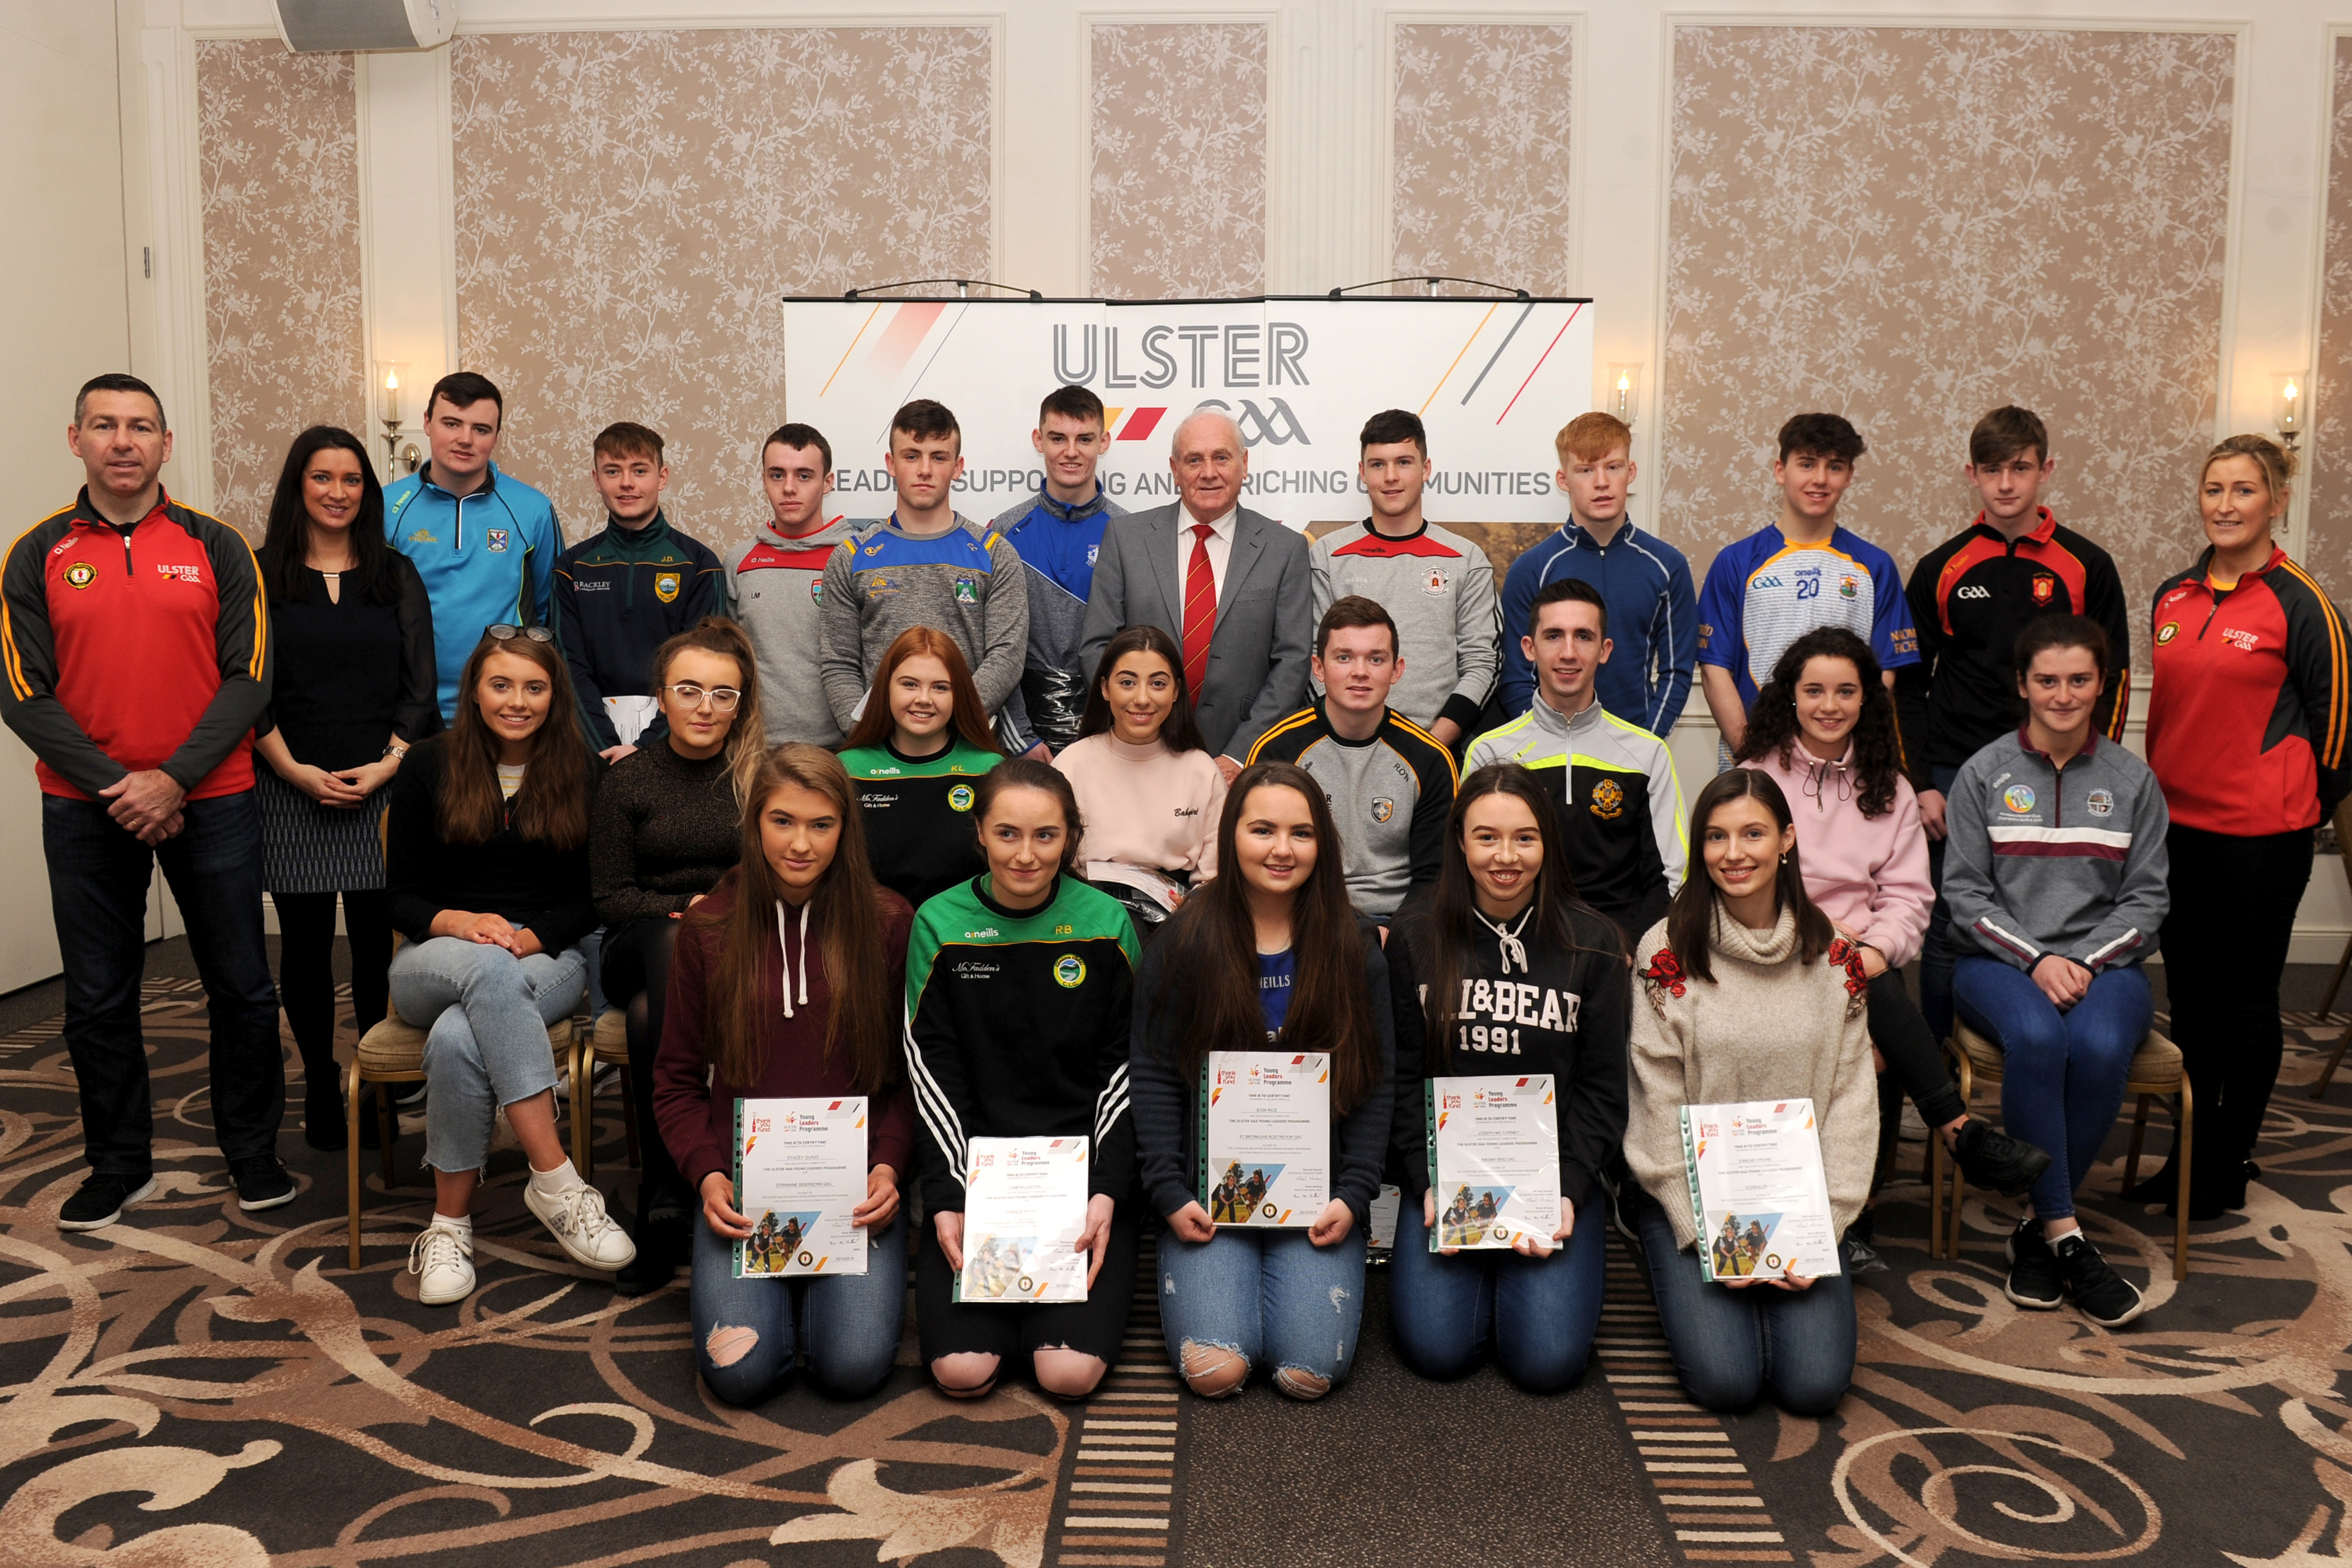 Ulster GAA recognise Young Leaders